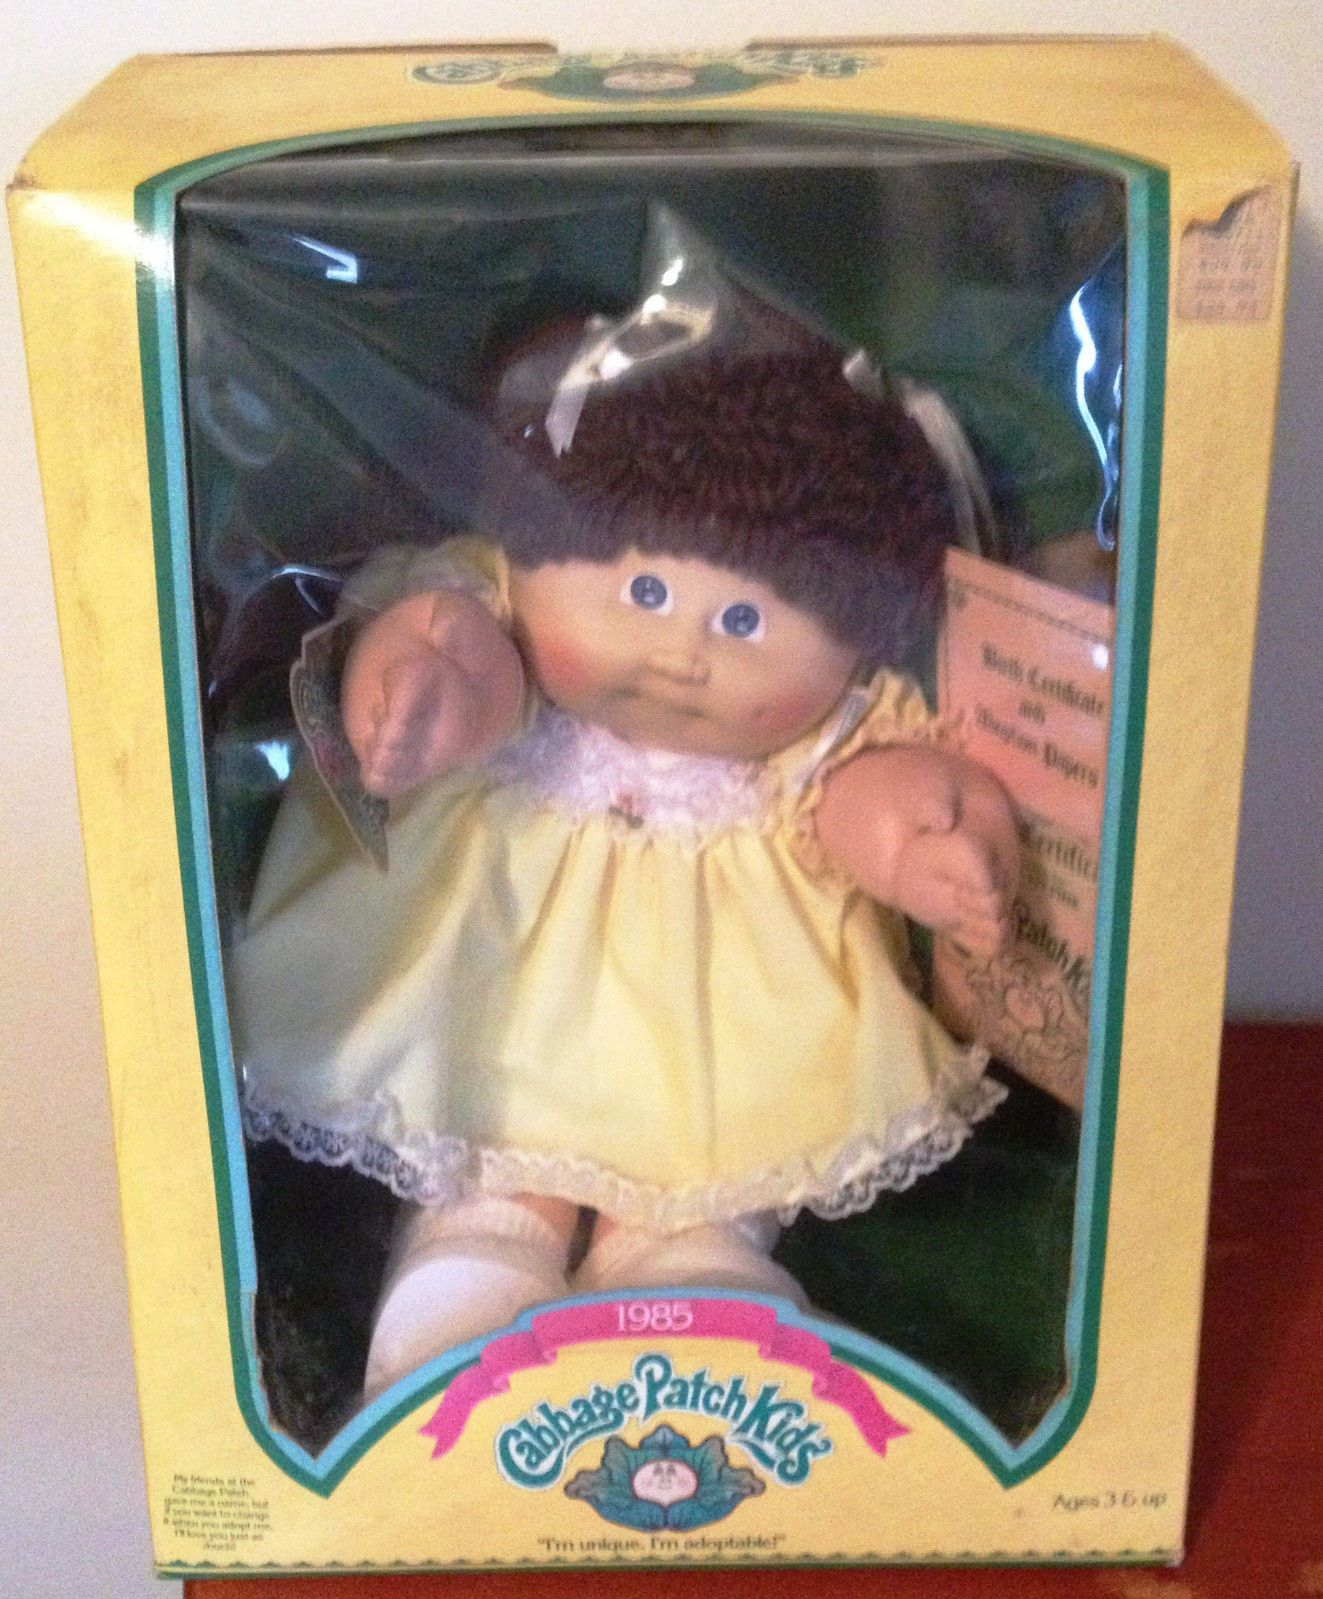 Vintage 1985 Cabbage Patch Doll Cheerleader With Box And Birth Certificate Ebay Cabbage Patch Kids Dolls Vintage Cabbage Patch Dolls Cabbage Patch Kids